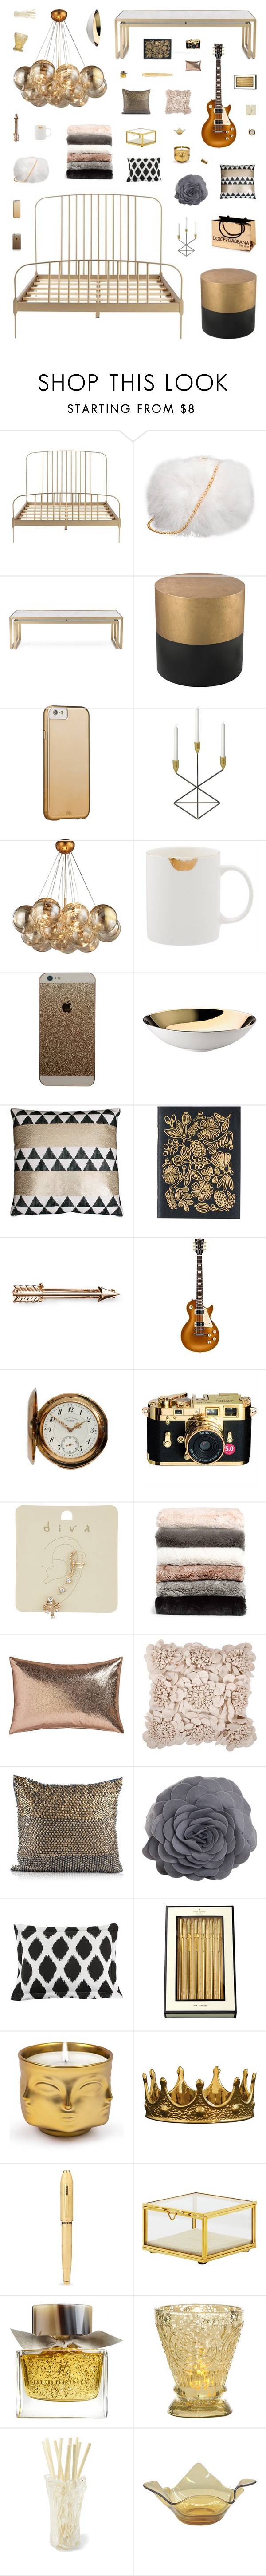 """Miscellaneous"" by belenloperfido ❤ liked on Polyvore featuring interior, interiors, interior design, home, home decor, interior decorating, Mitchell Gold + Bob Williams, Renwil, Rosenthal and Miss Selfridge"